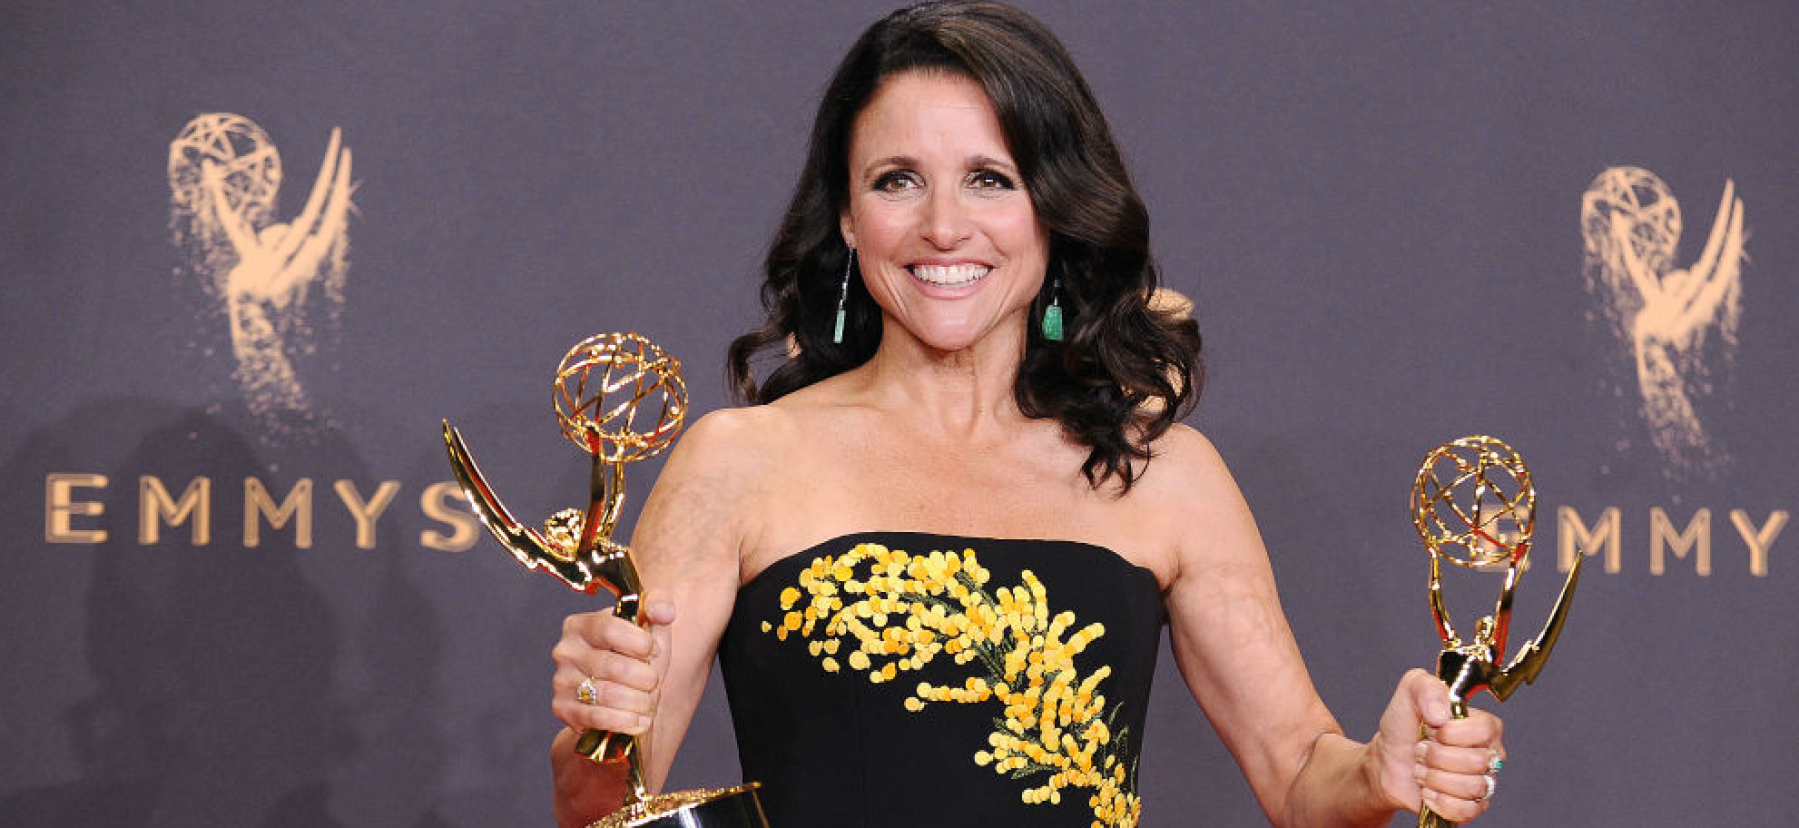 LOS ANGELES, CA - SEPTEMBER 17: Actress Julia Louis-Dreyfus poses in the press room at the 69th annual Primetime Emmy Awards at Microsoft Theater on September 17, 2017 in Los Angeles, California. (Photo by Jason LaVeris/FilmMagic)